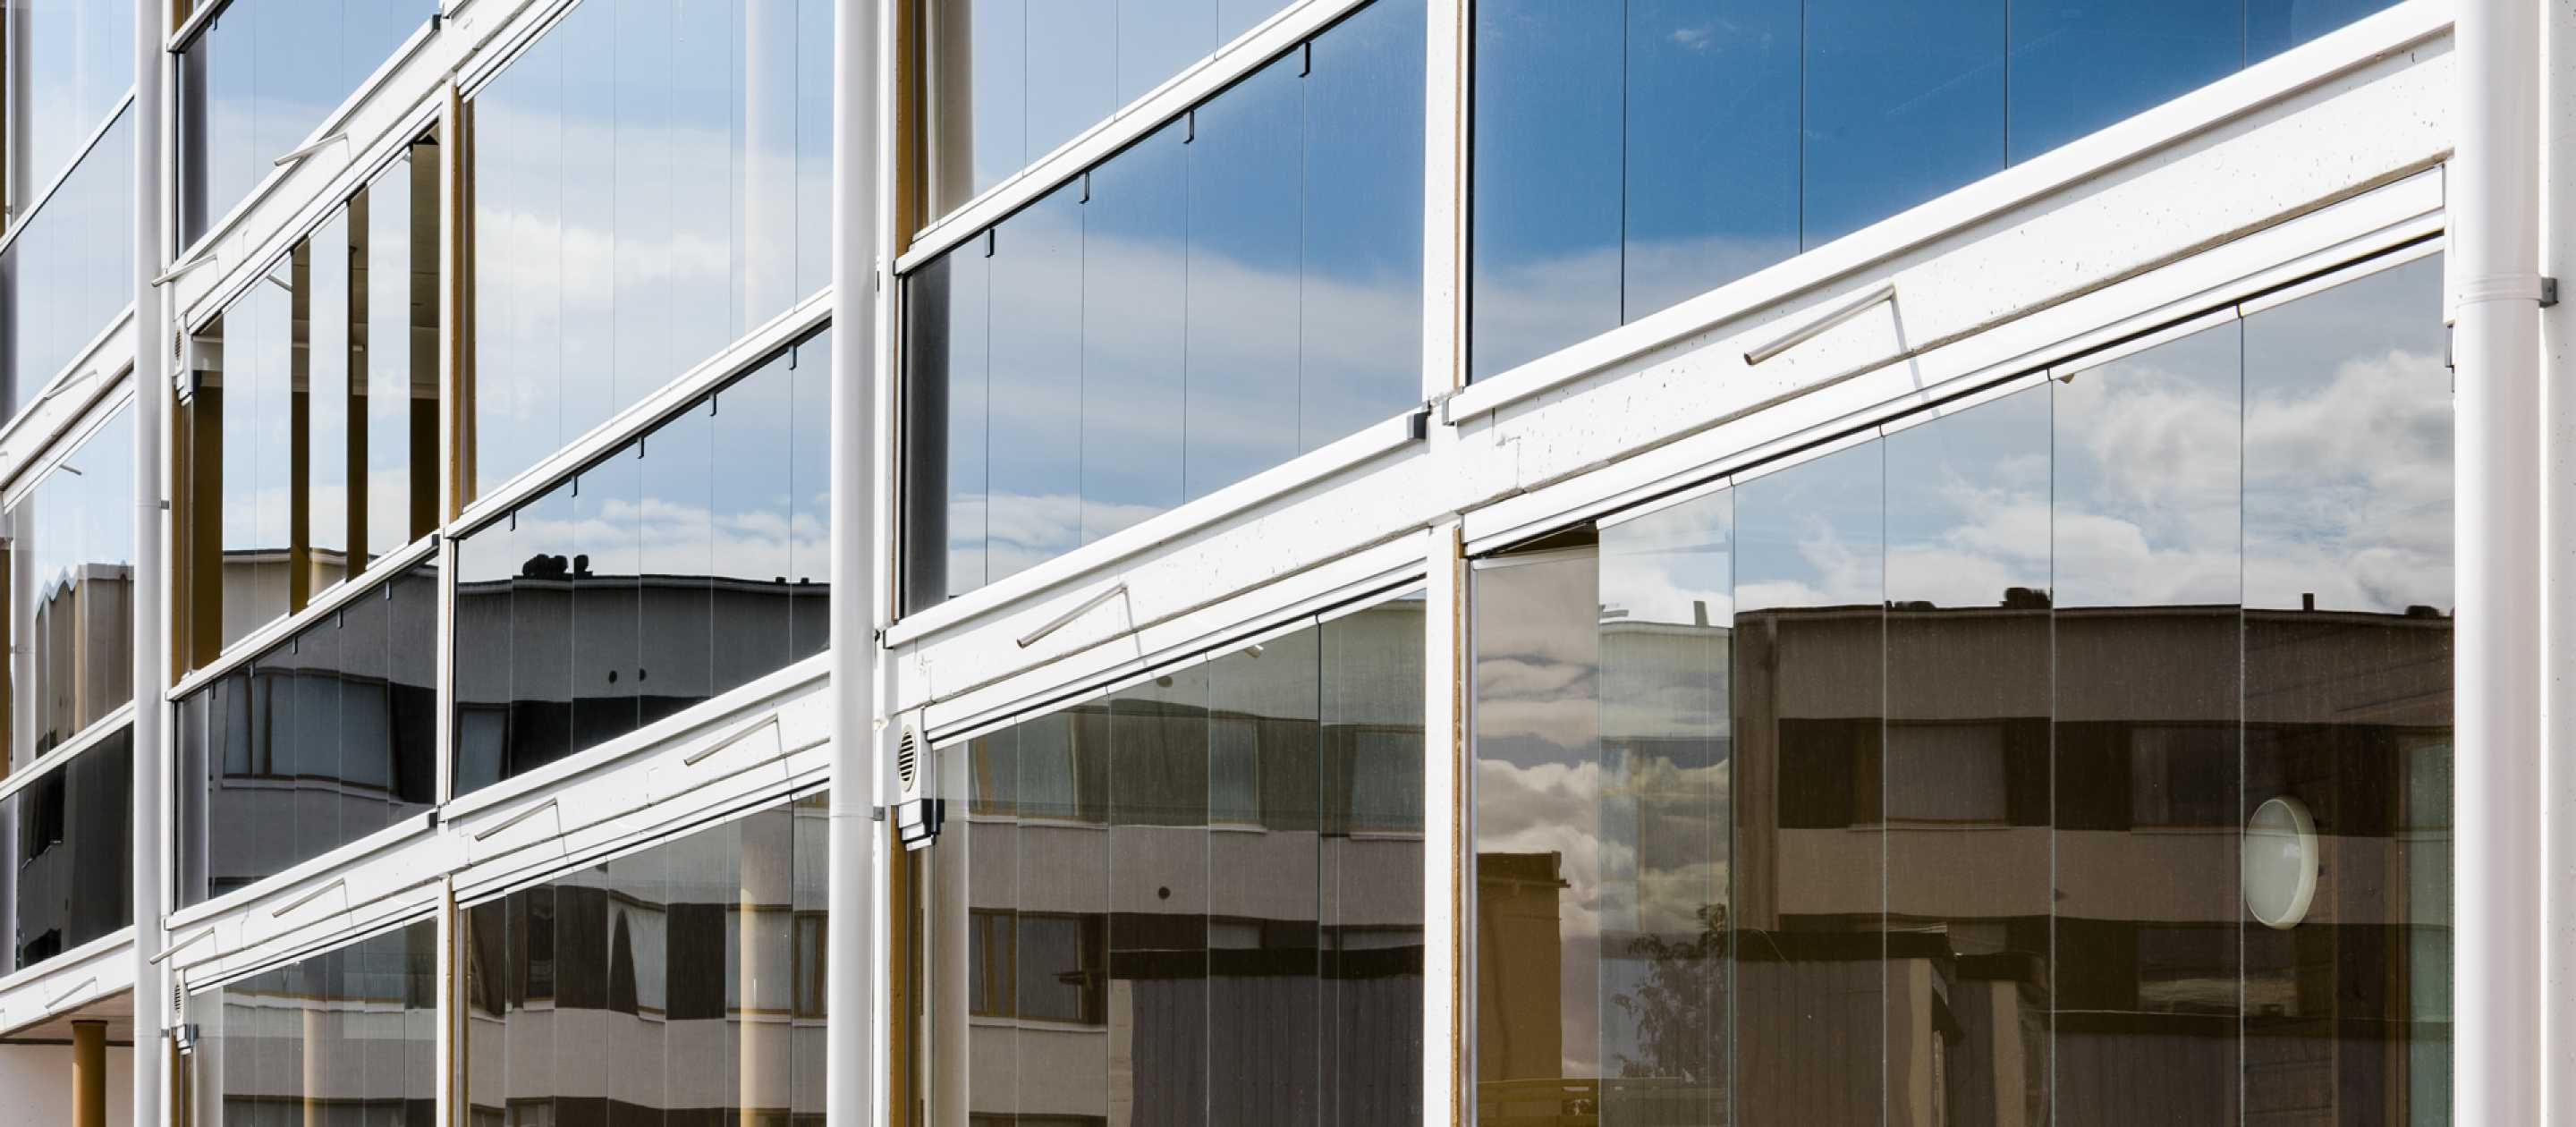 Lumon Canada, Balcony Glass, Balcony Glazing, Balcony Facade, Retractable Glass Walls, Balcony Glass Toronto, Balcony Glass Hamilton, Balcony Glass Vancouver